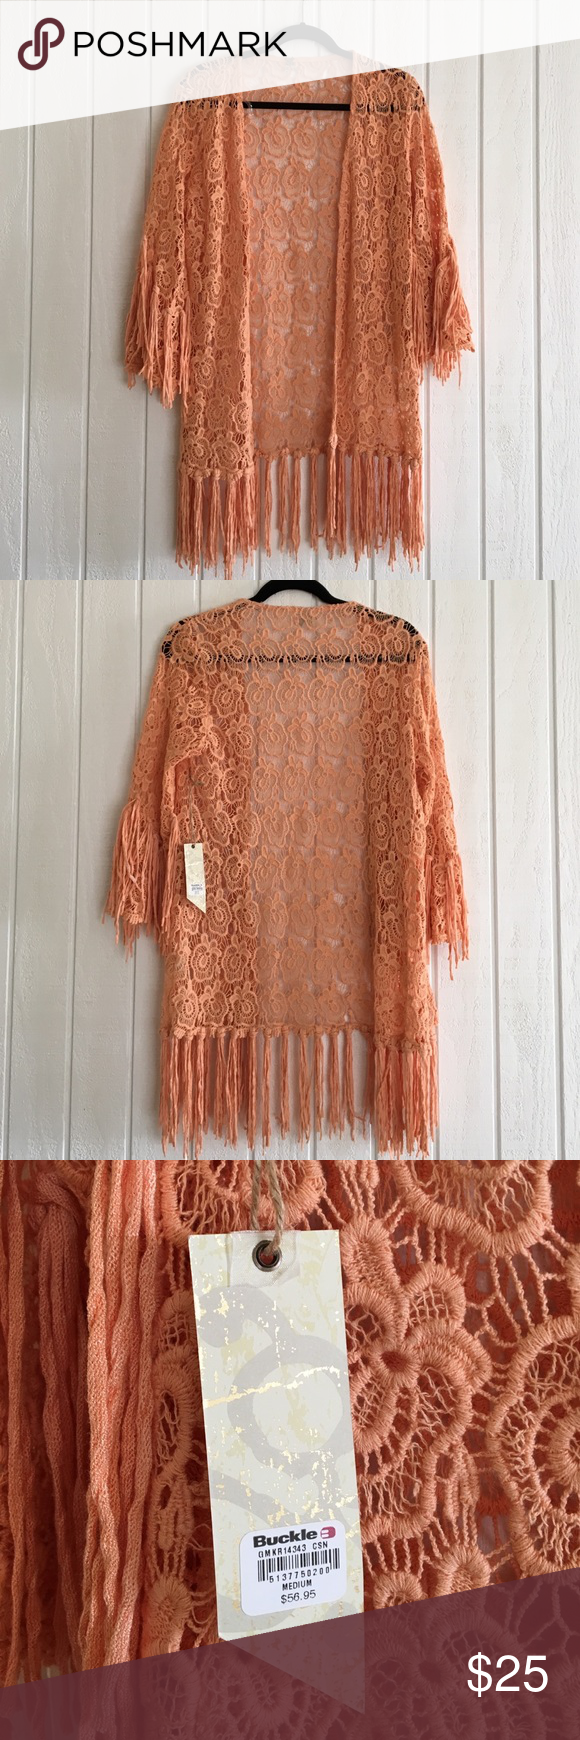 Lacy cardigan with fringe Peach lacy cardigan with fringe. Brand new never worn BKE Sweaters Cardigans